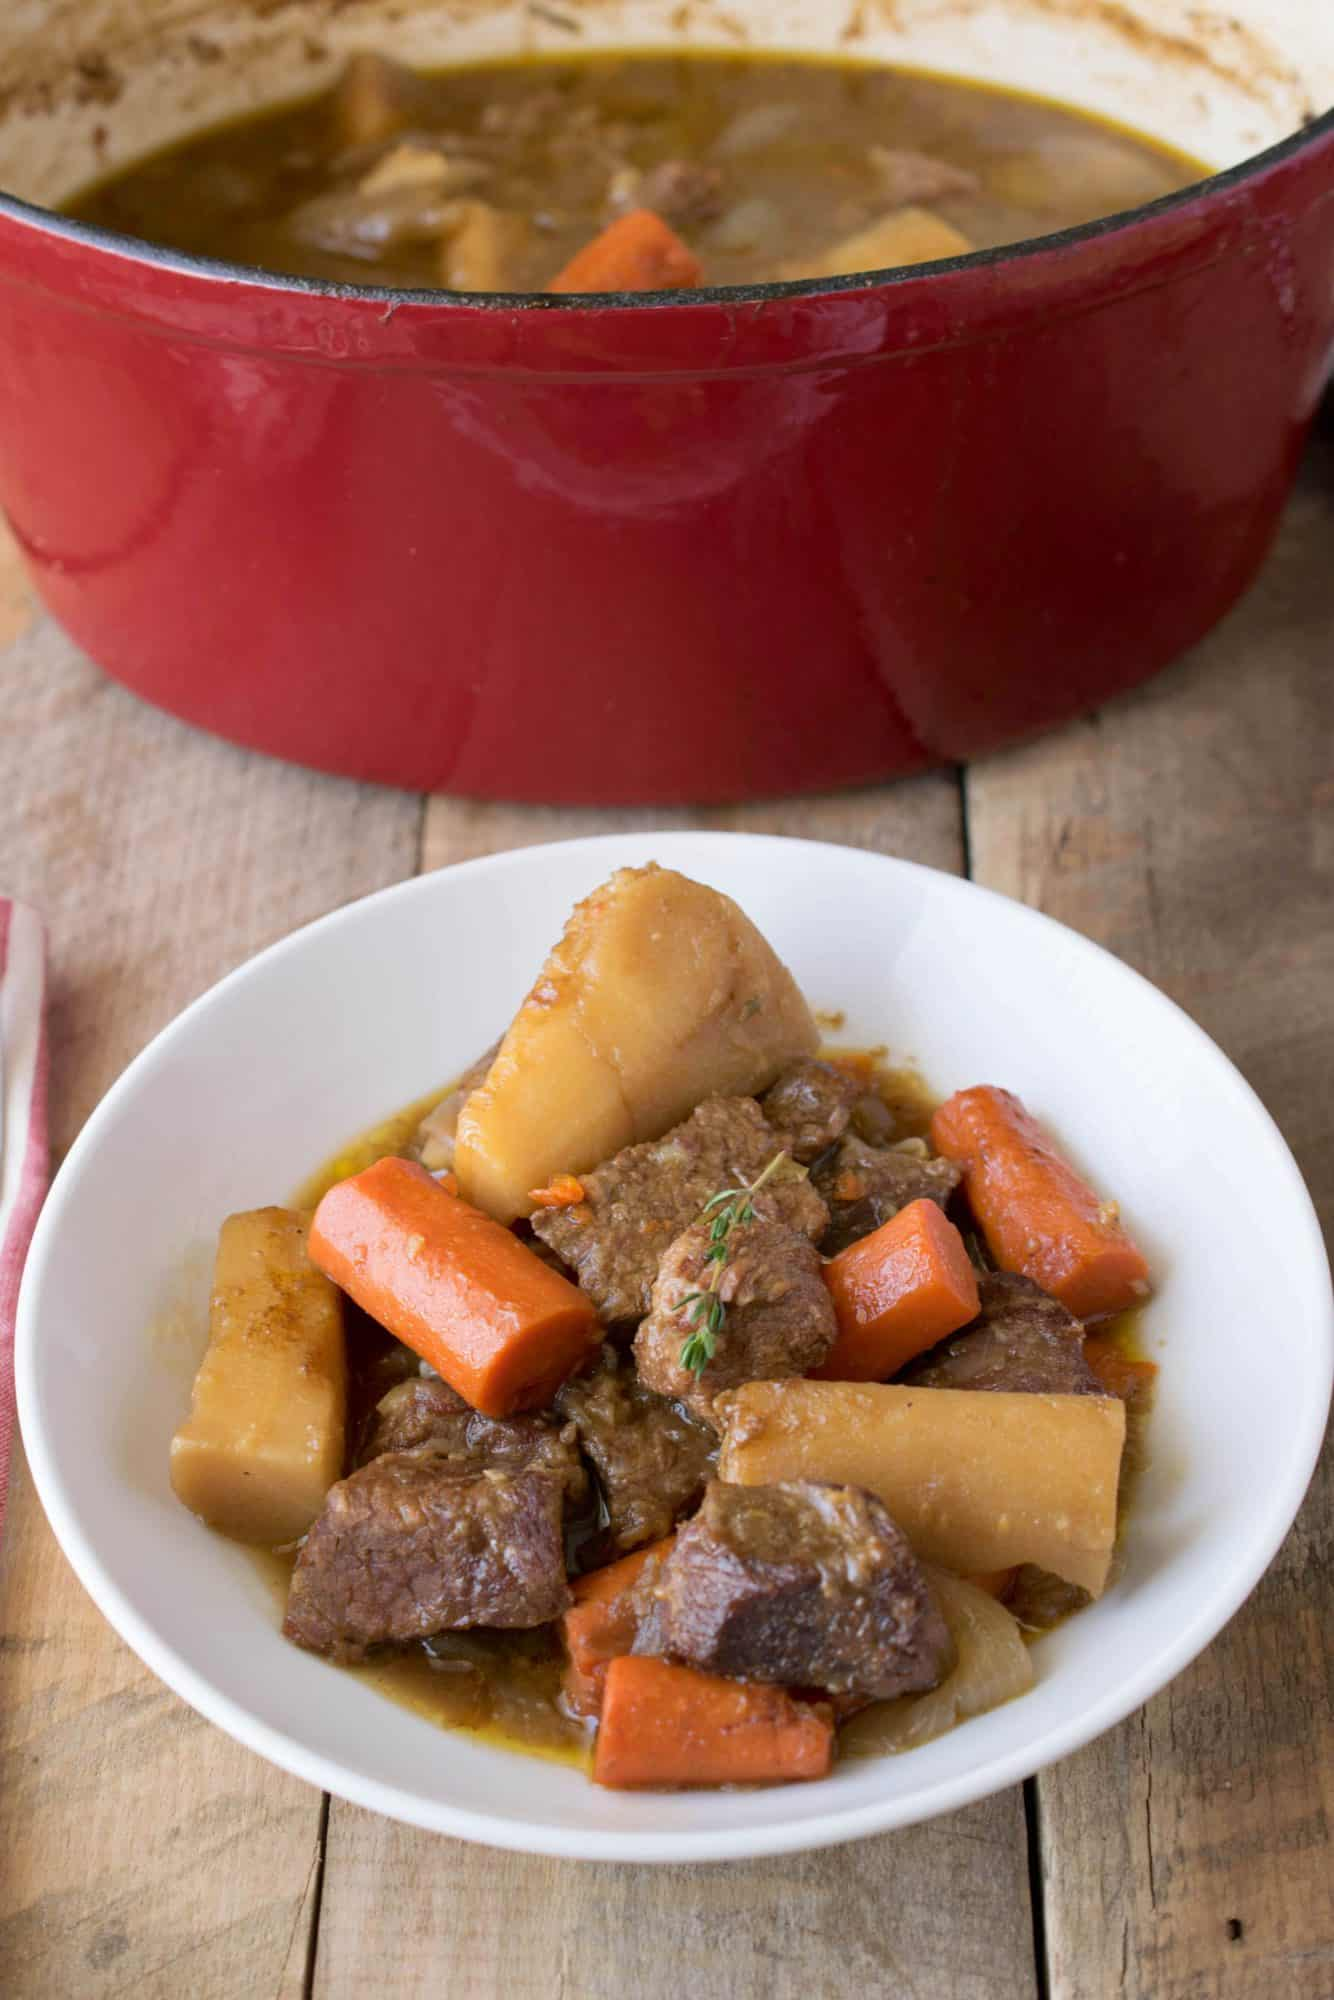 Irish beef and Guinness stew, large chunks of beef, carrots and parsnip